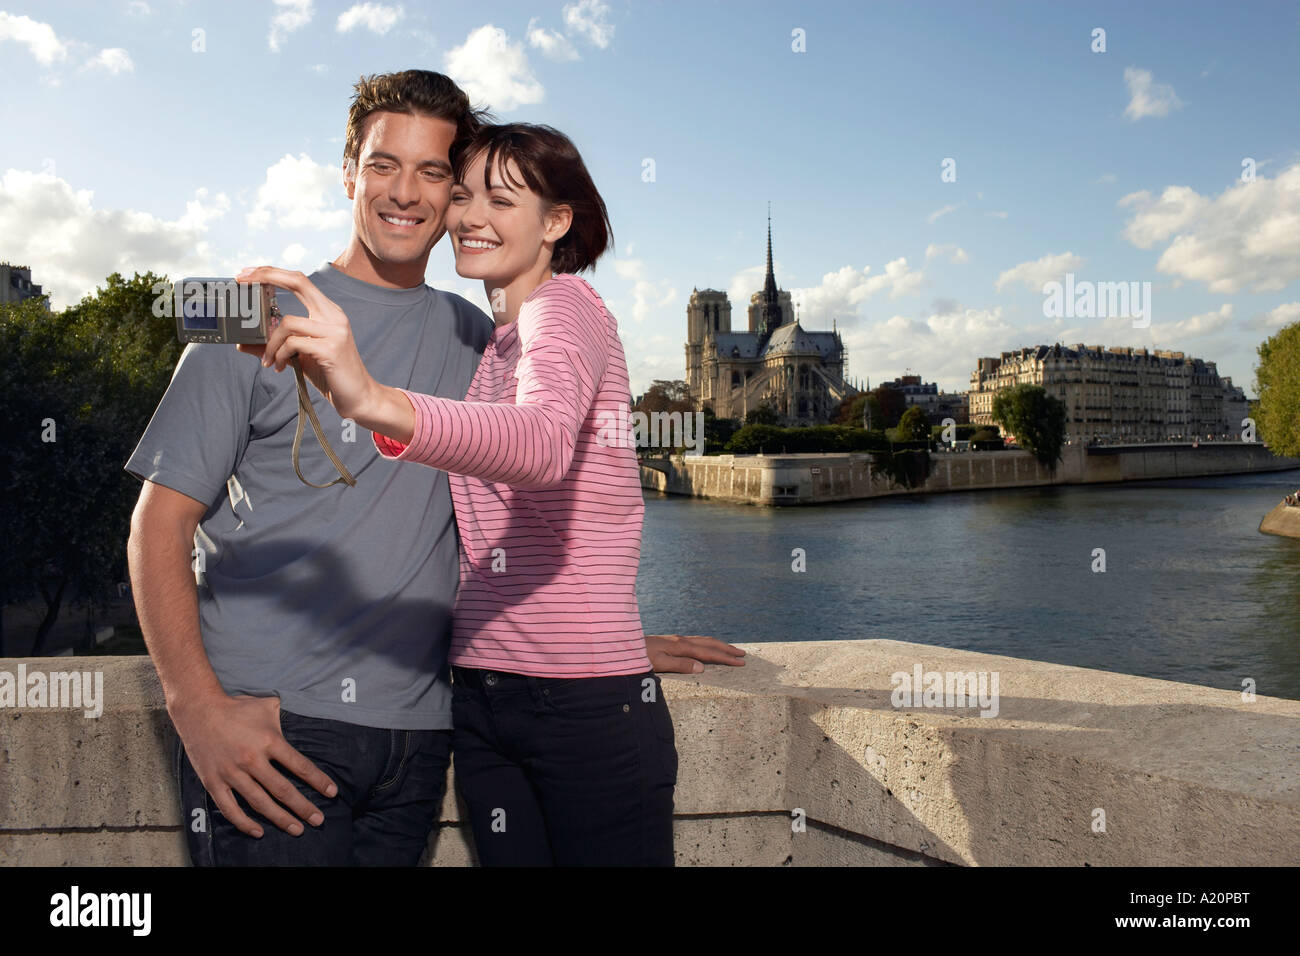 Paris, France, Couple taking a photo of themselves, in front of Notre Dame Cathedral - Stock Image